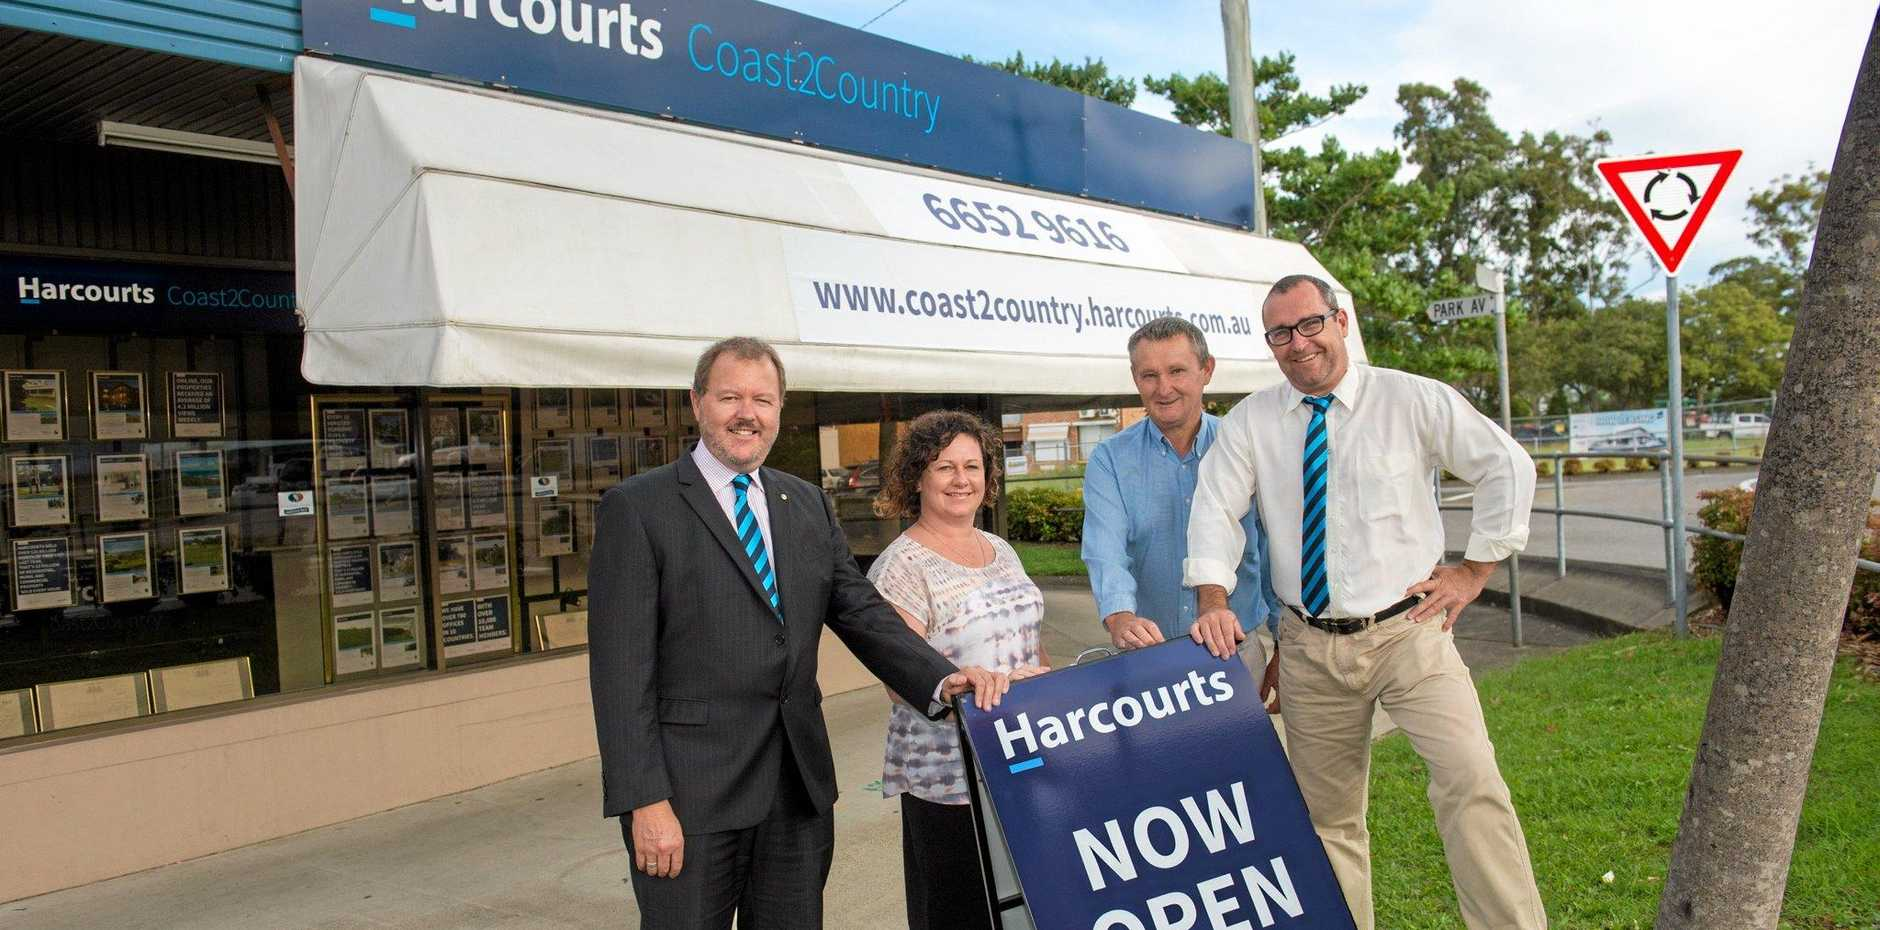 THE TEAM: Harcourts Coast 2 Country Real Estate staff Mike Squire, Jodie Ainsworth, Jim Auld, and principal Peter Creenaune.